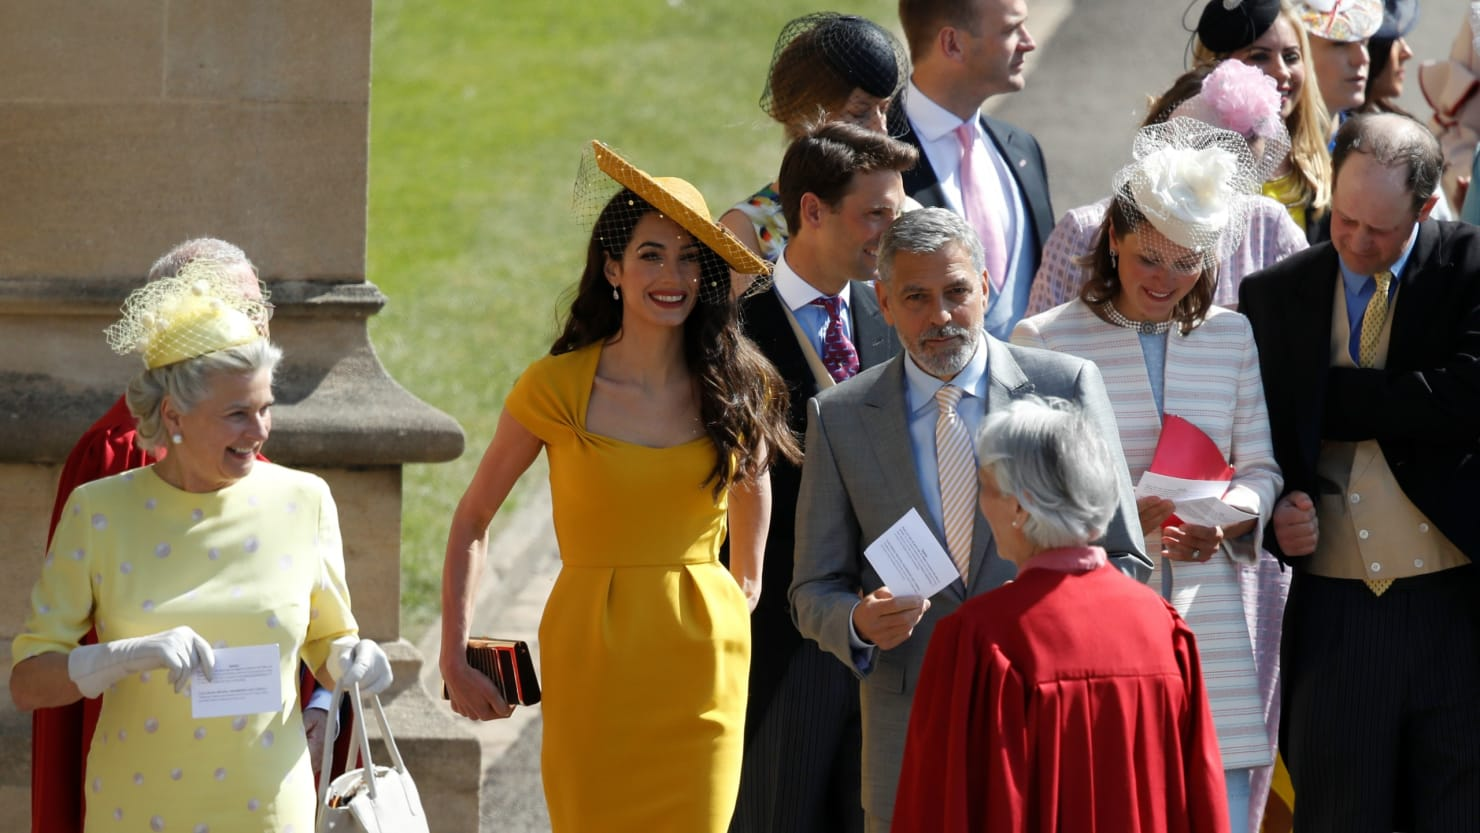 George and Amal Clooney at the Royal Wedding 180519-royal-wedding-celebrity-guests-cheat_uquclr